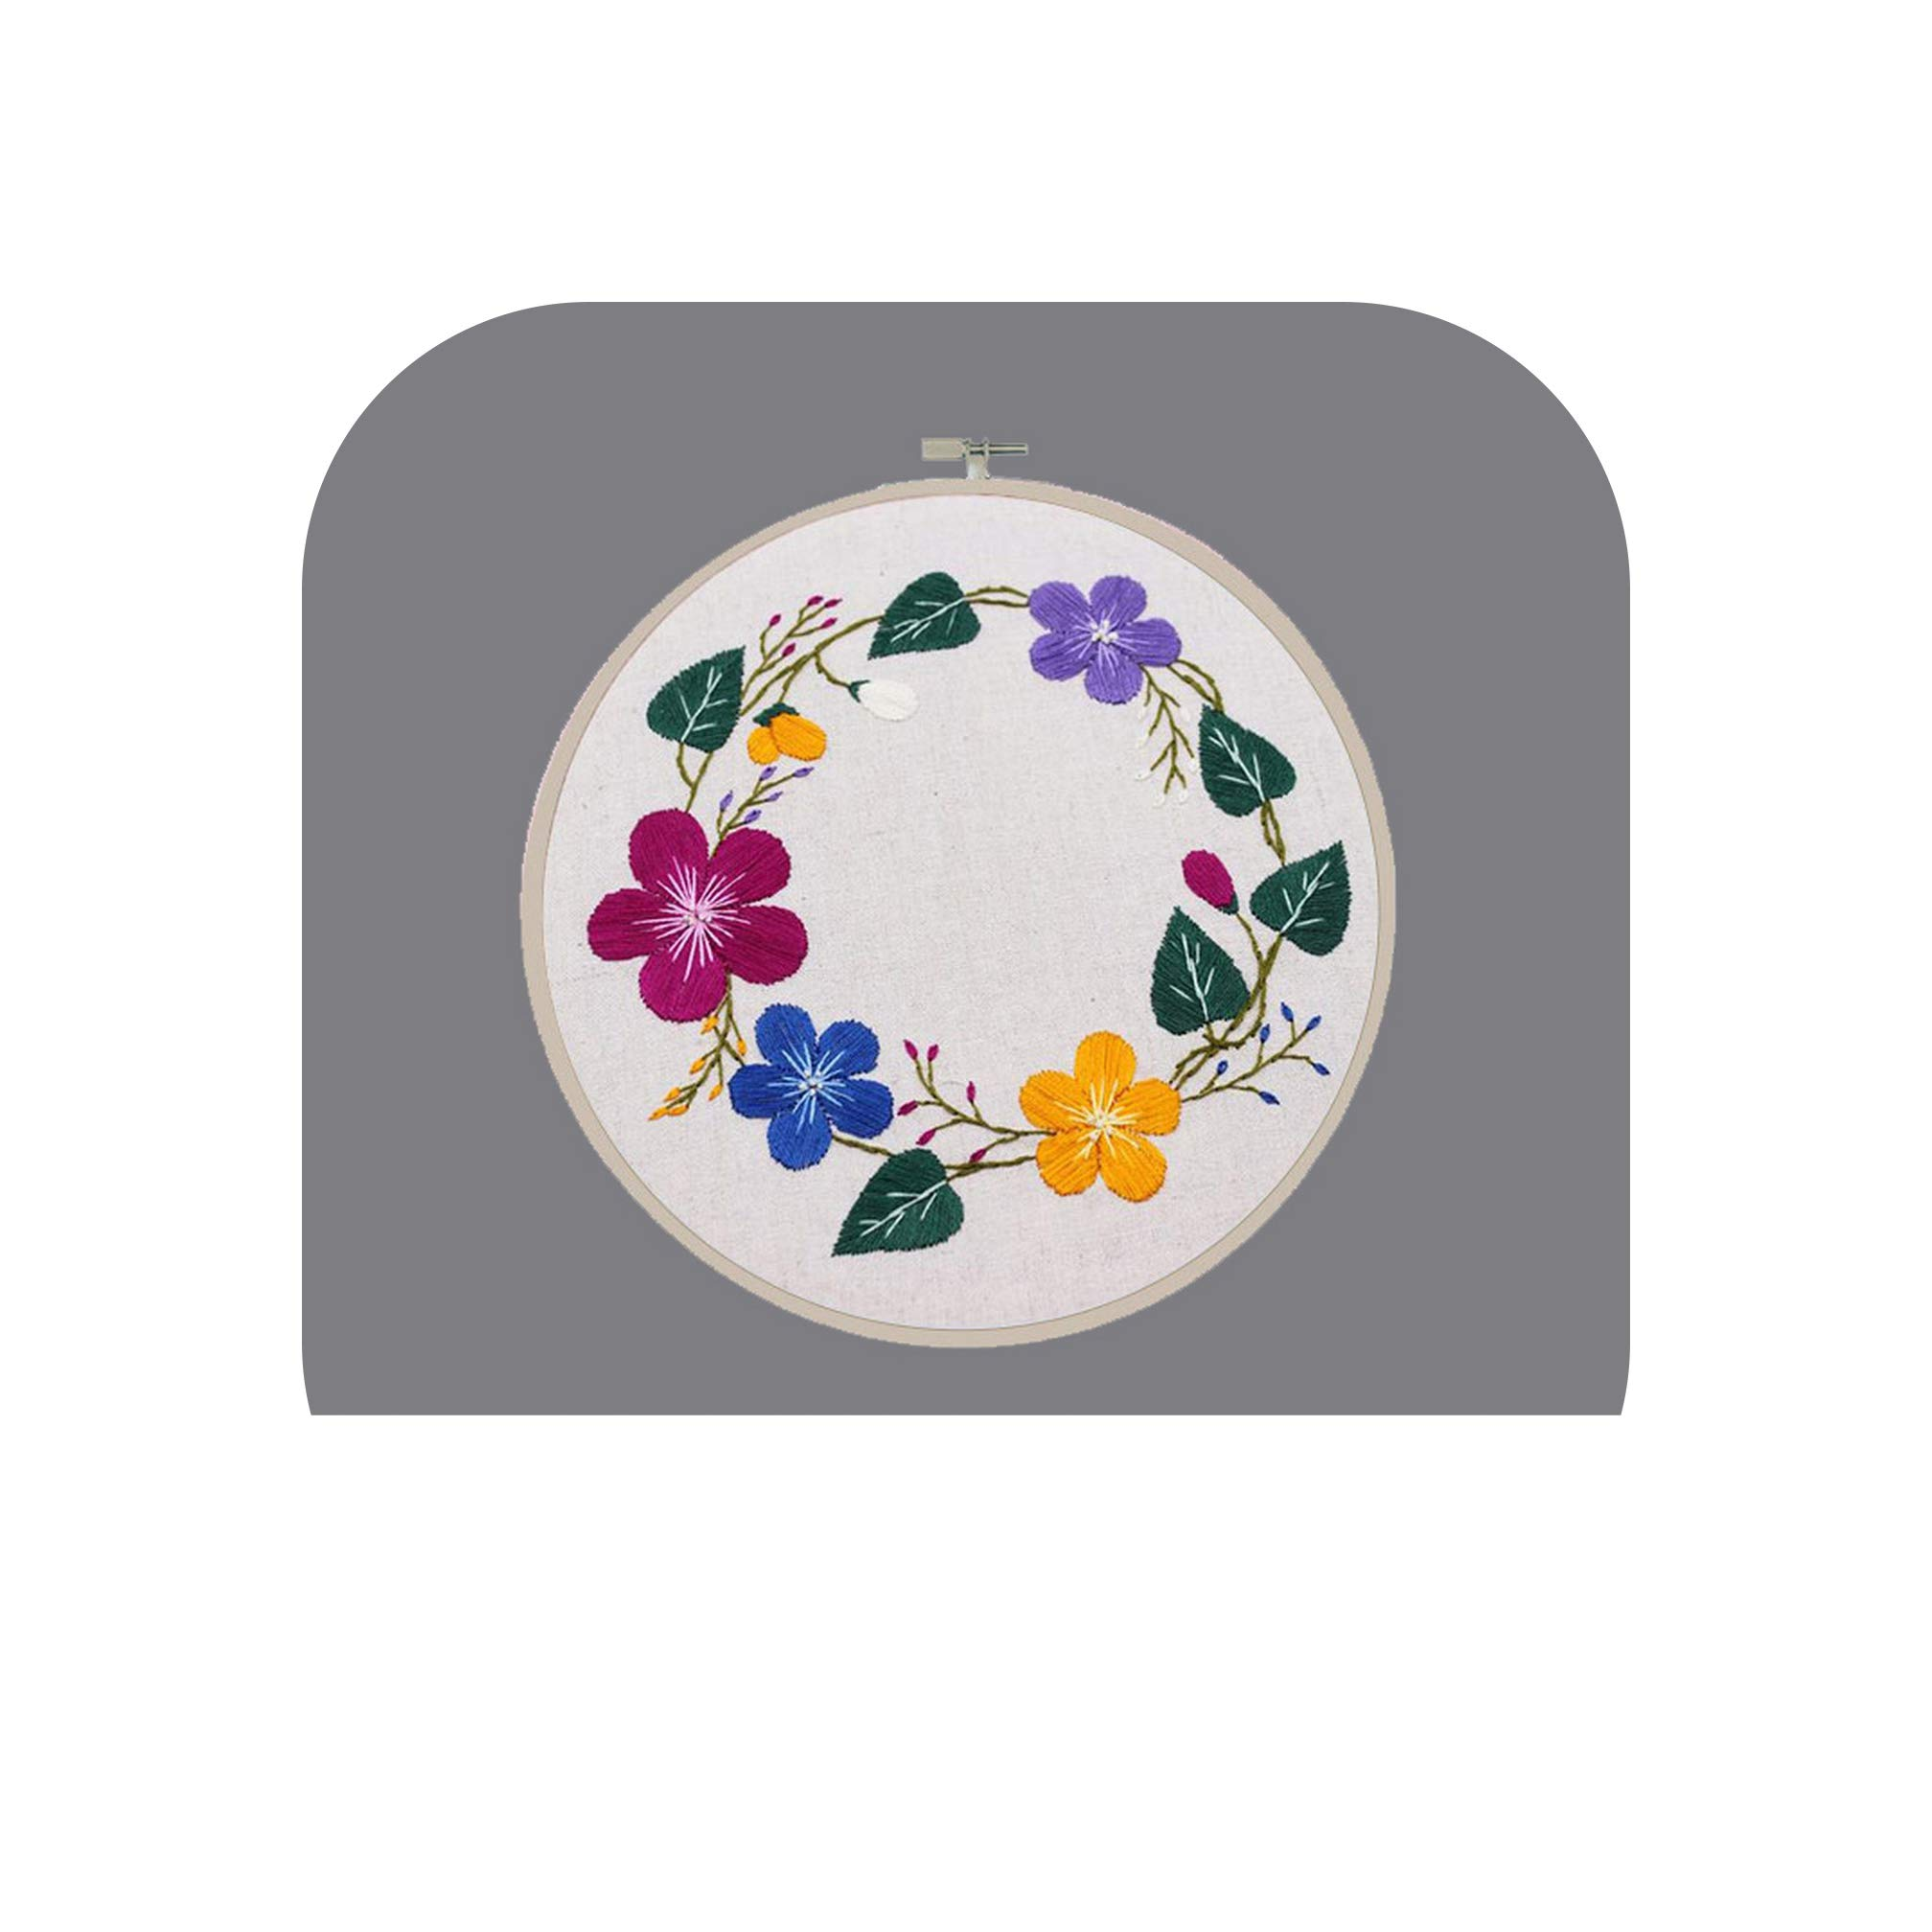 DIY Embroidery for Beginner Needlework Kits Cross Stitch Flowers Collections Paintings Lavender Wall Art Home Accessories,JH051,with Bamboo Frame by koweis